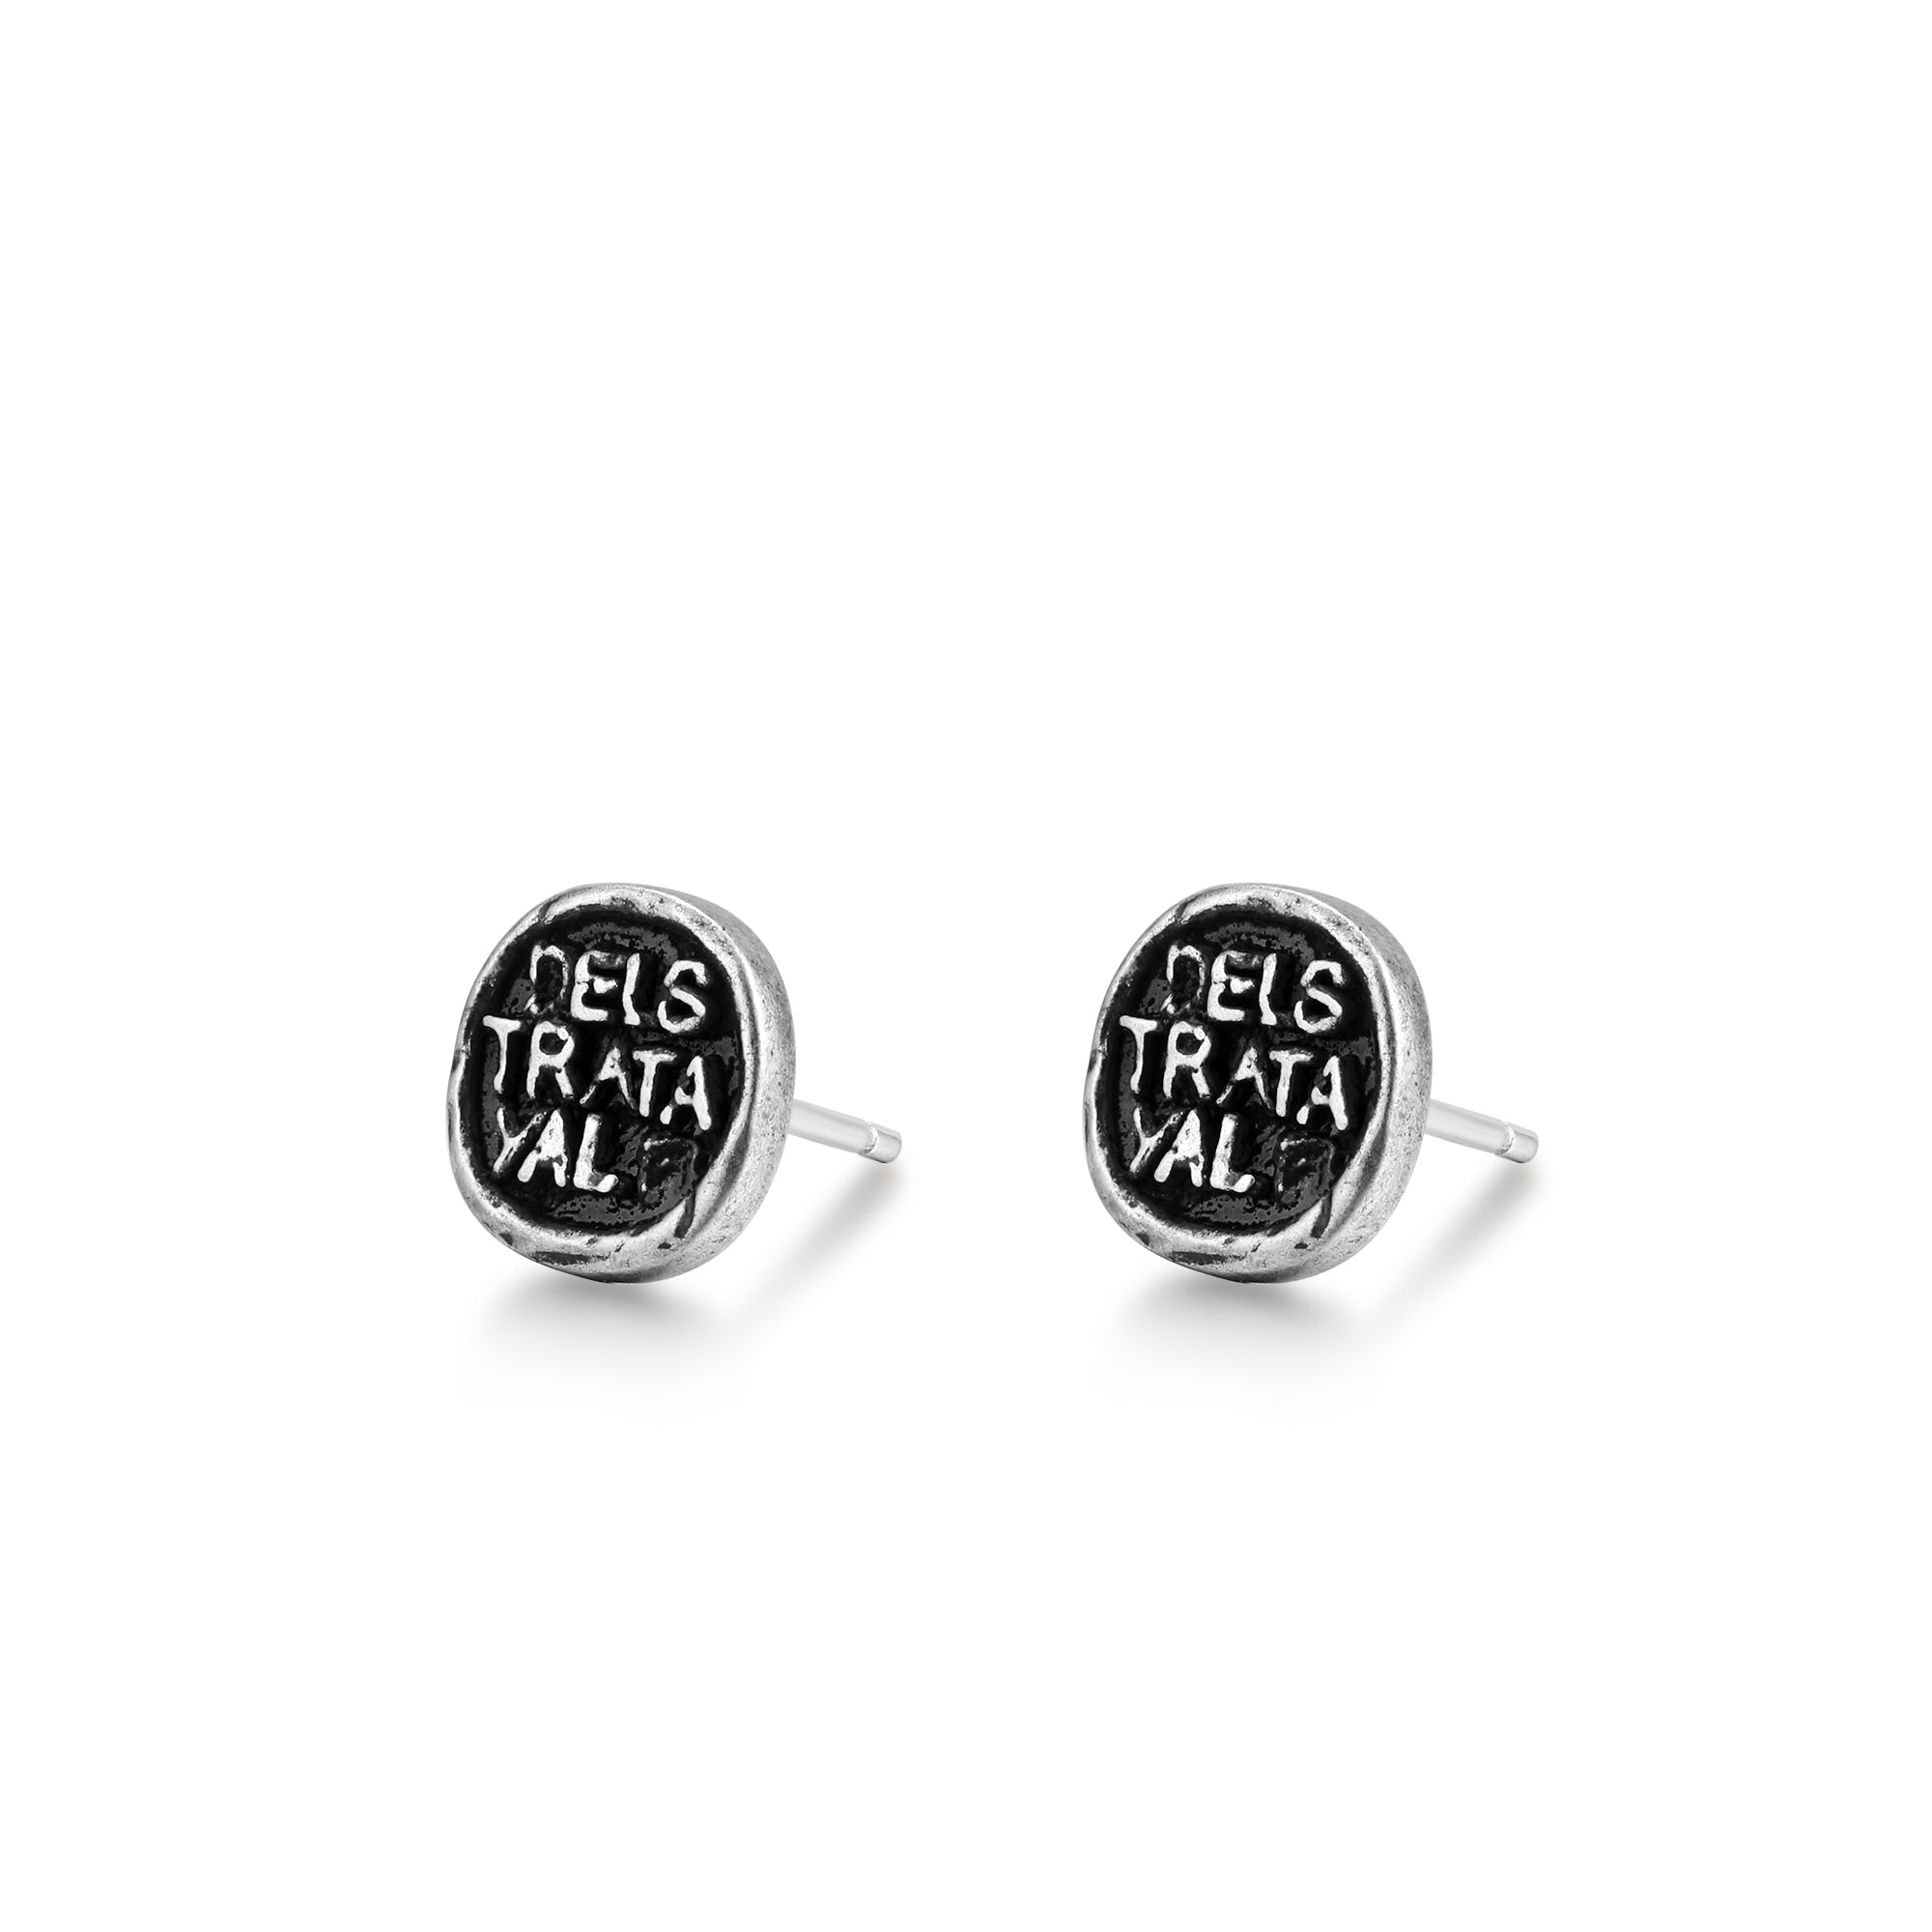 Lettered Round Stud Earrings